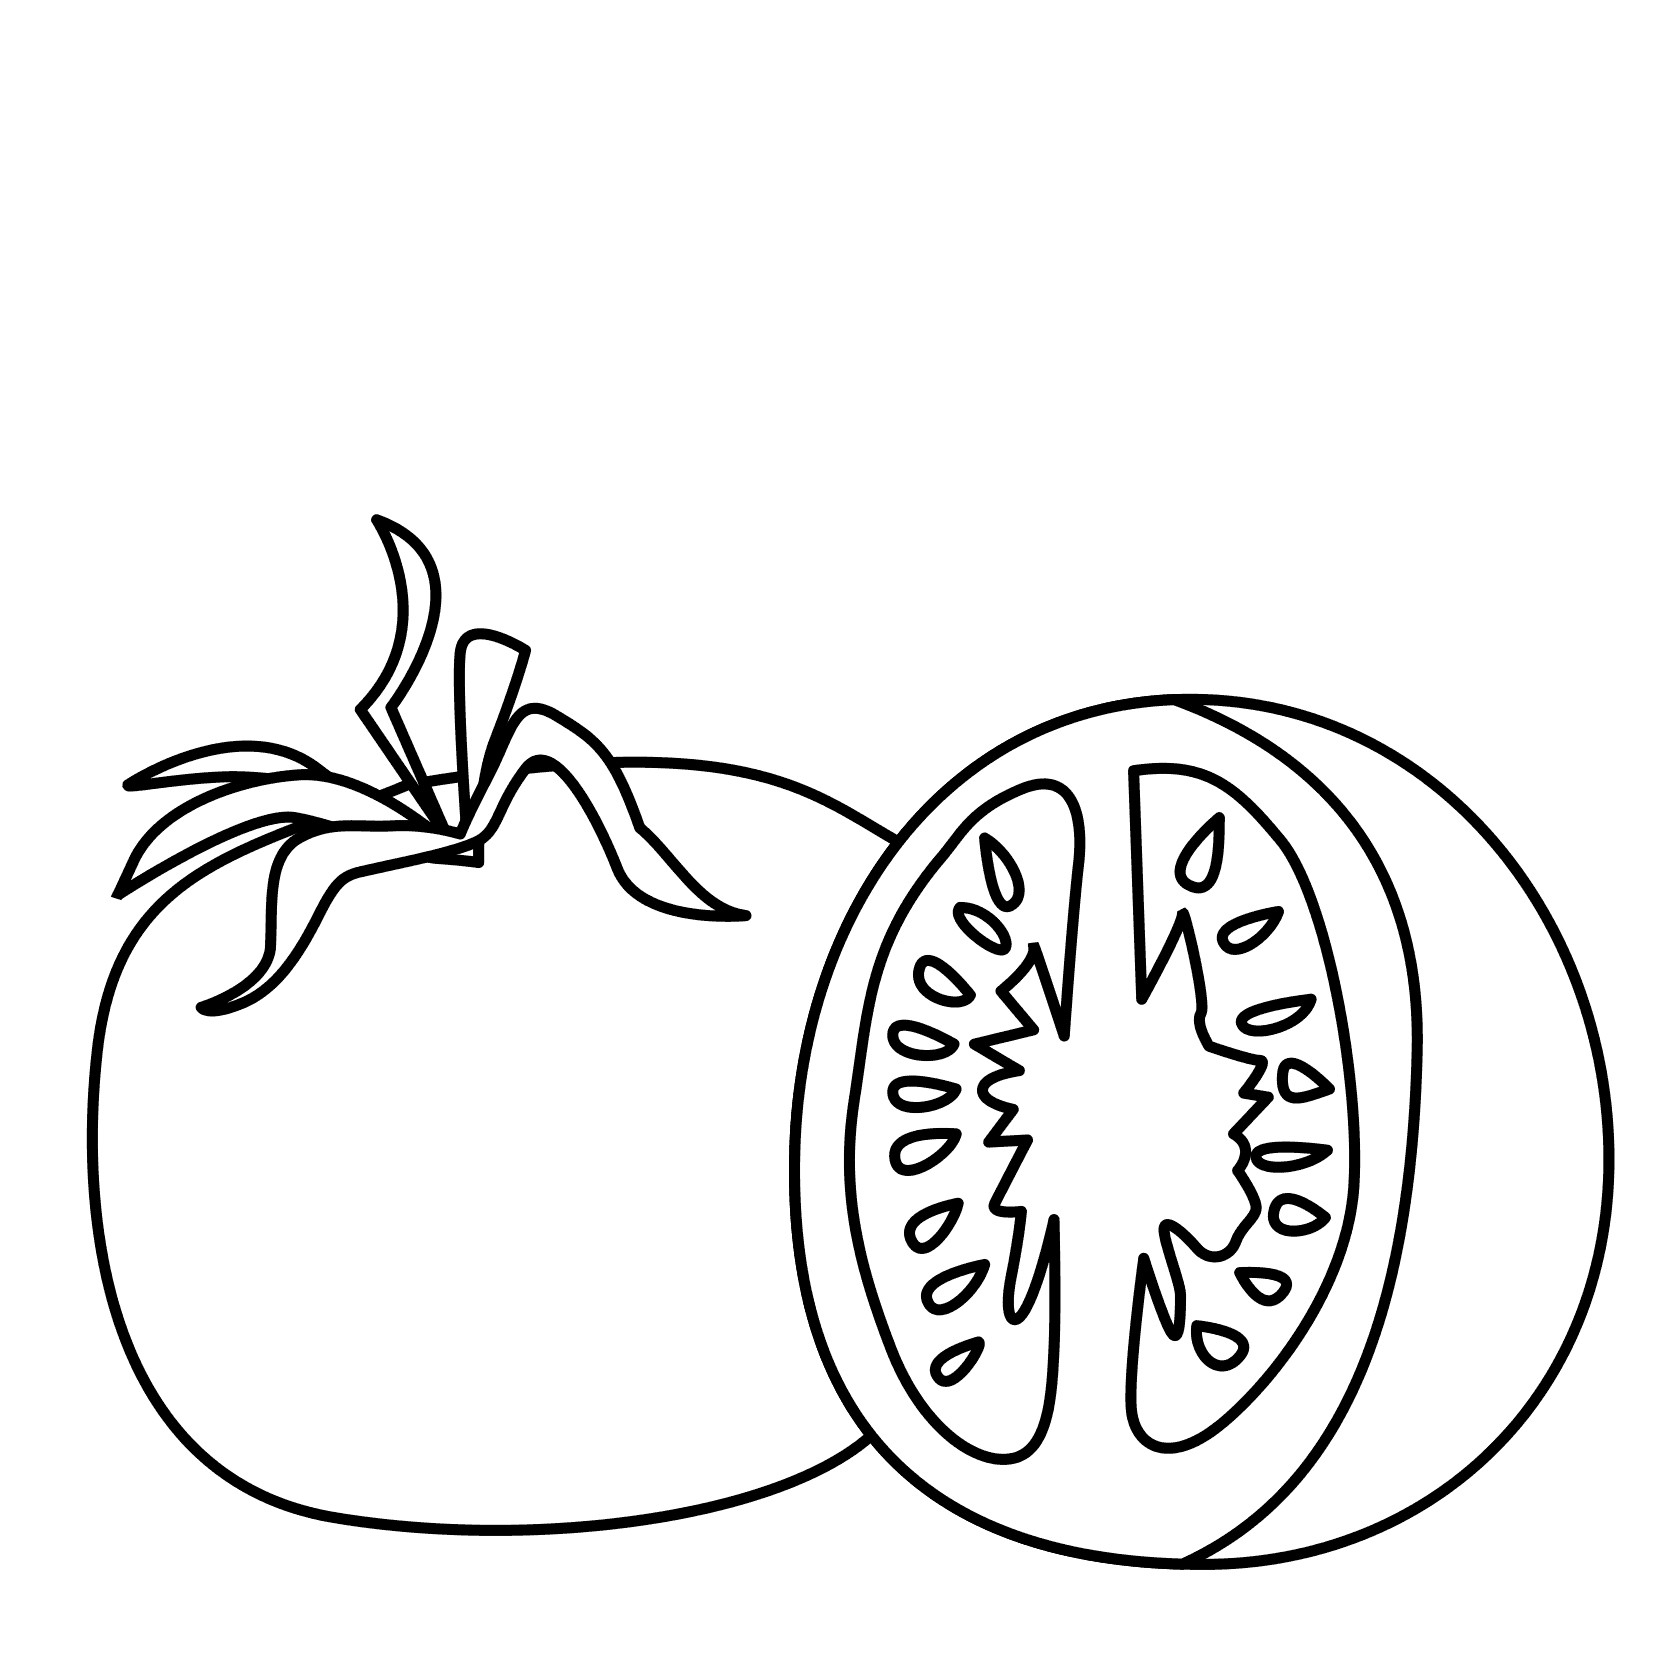 Tomatoes clipart coloured. Fresh tomato colouring pages